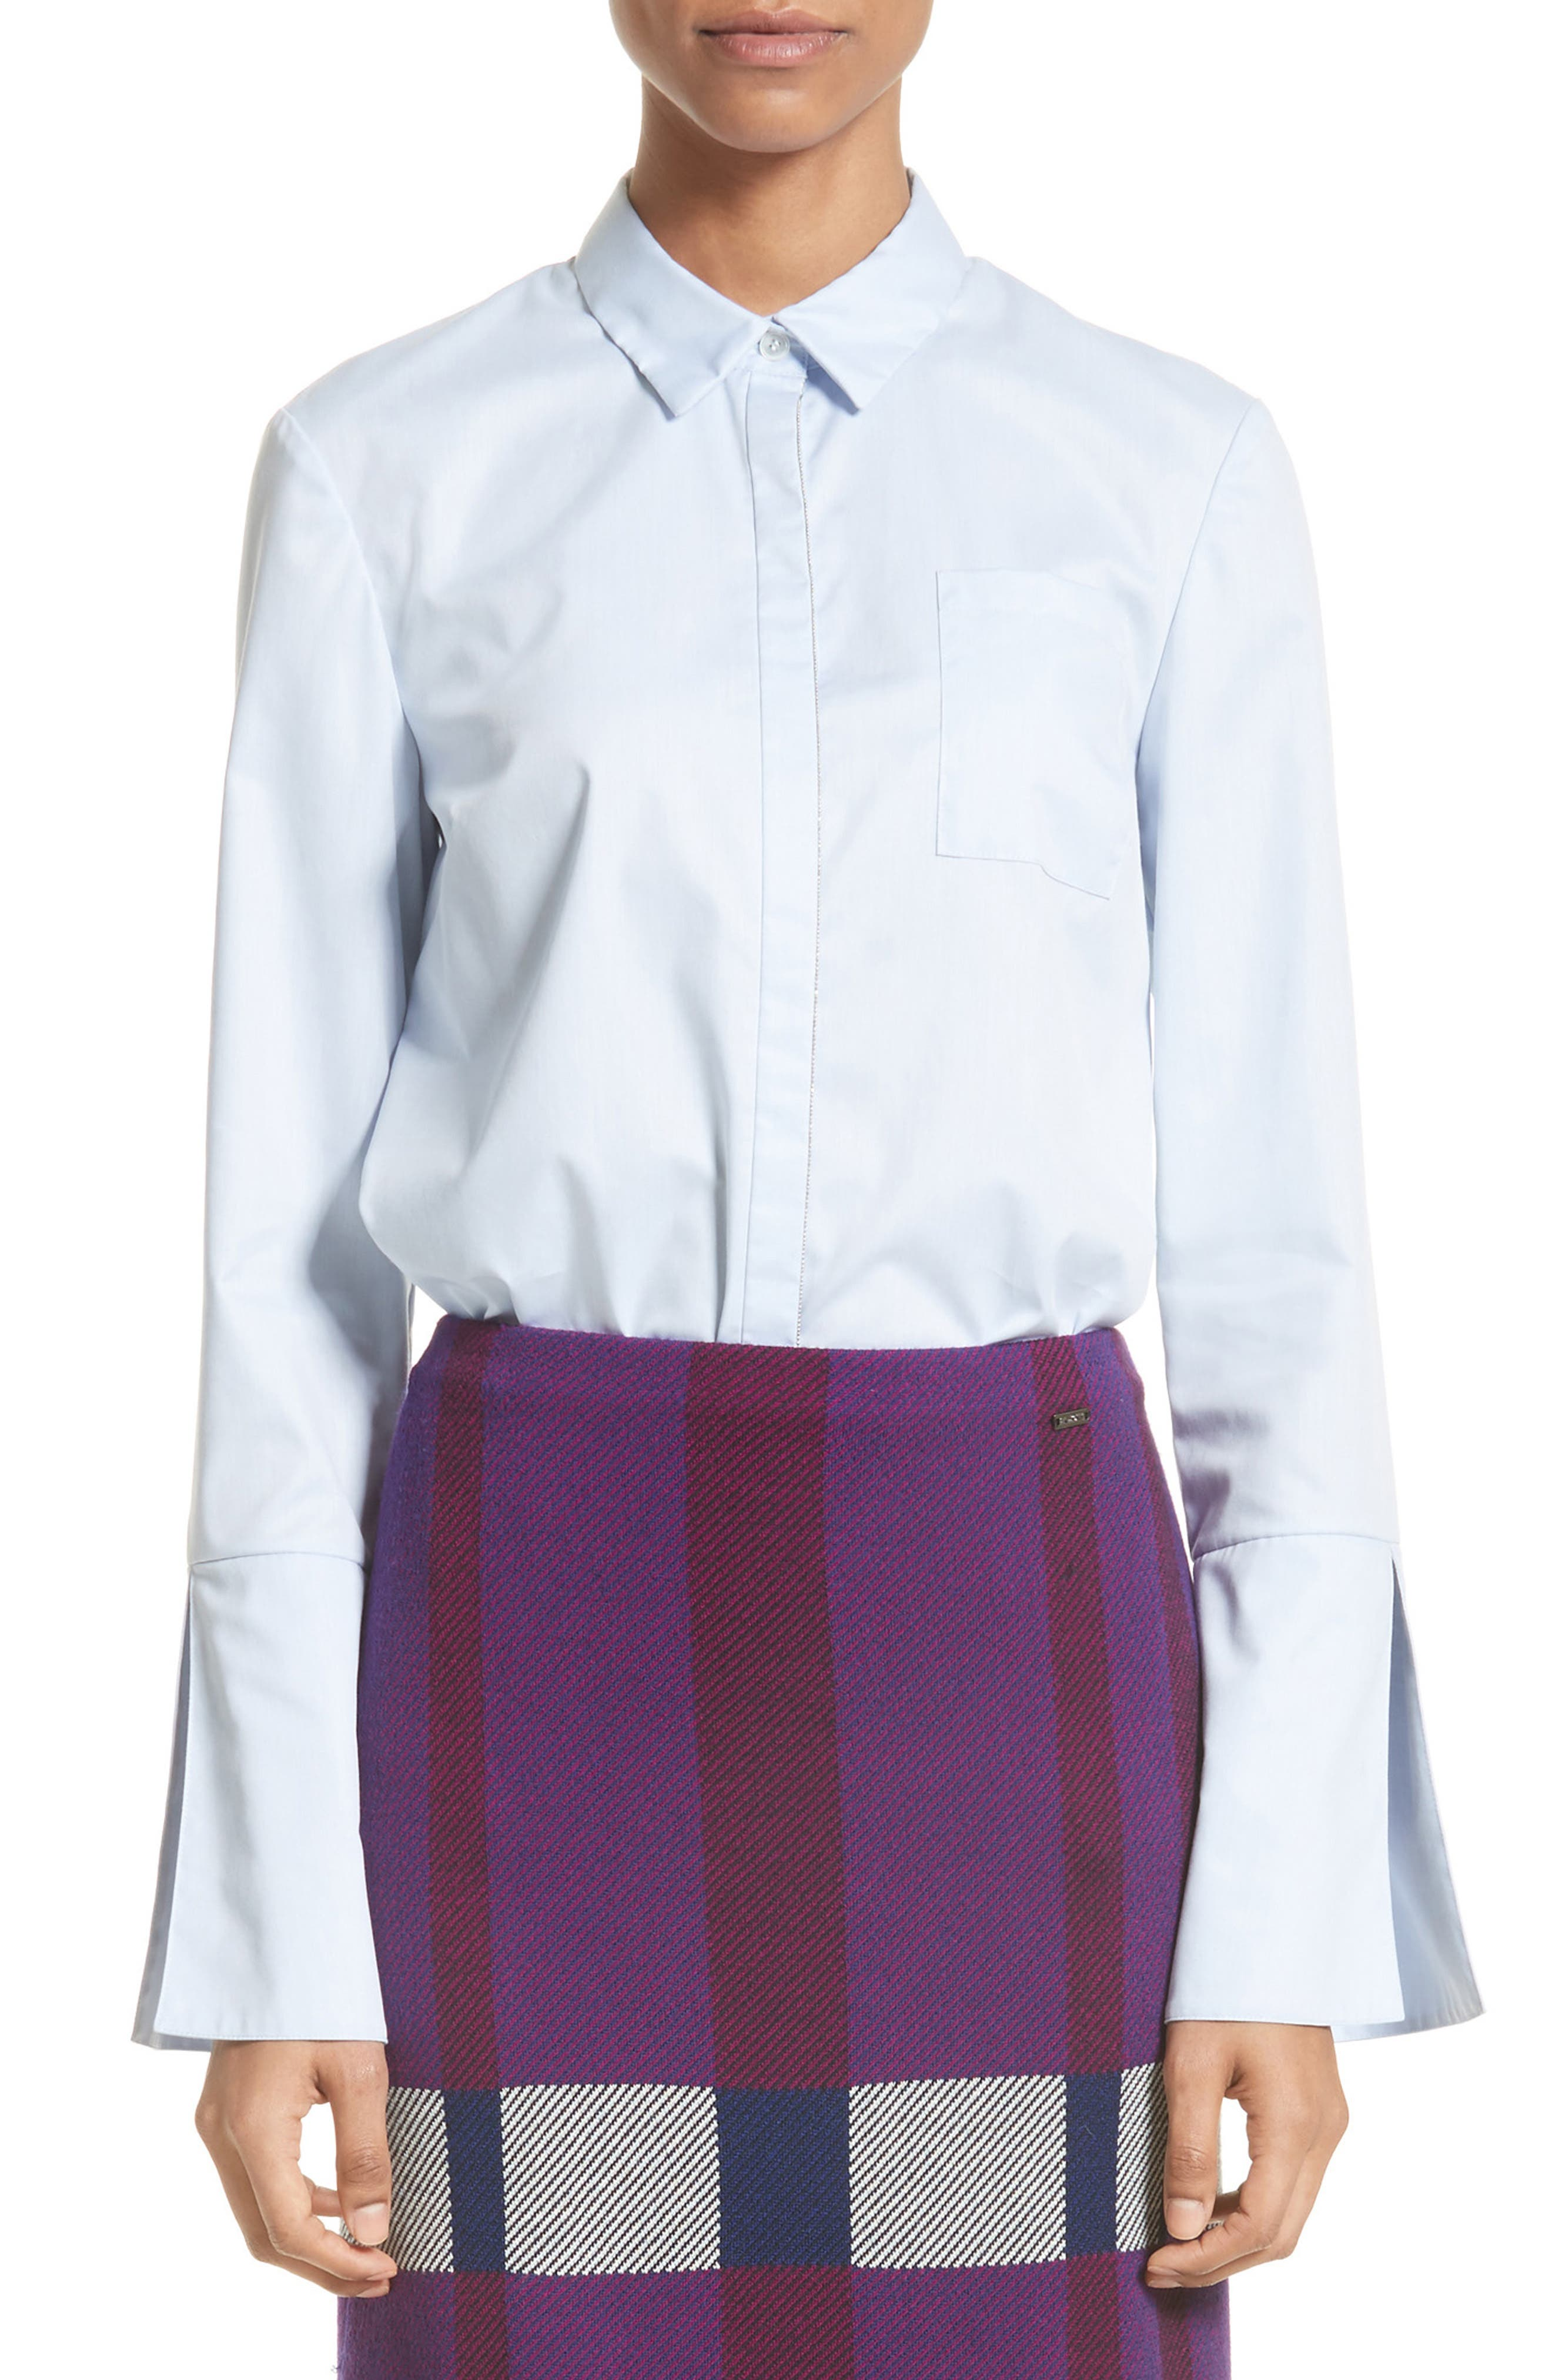 Bell Sleeve High/Low Oxford Shirt,                             Main thumbnail 1, color,                             420